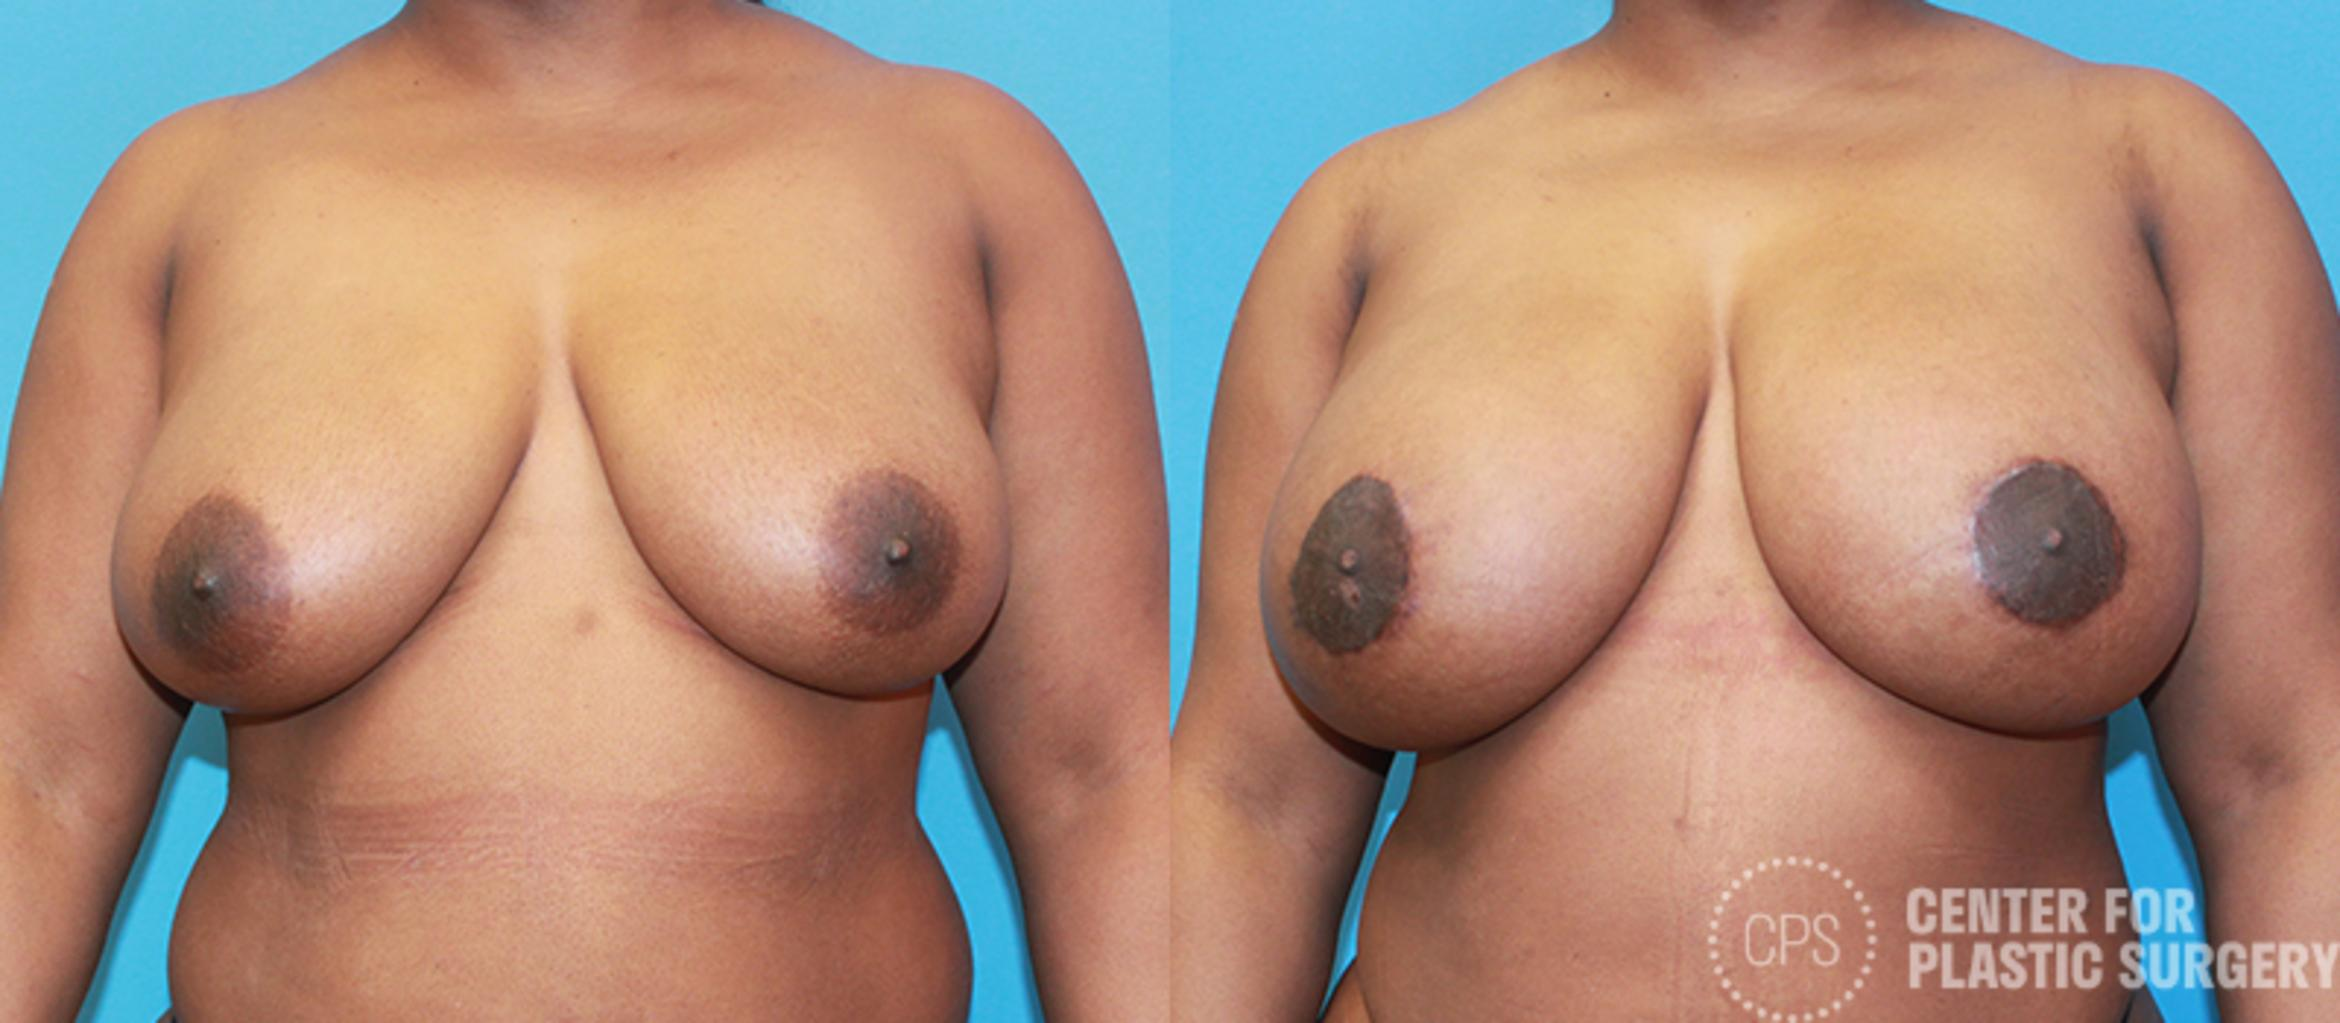 Breast Augmentation Case 103 Before & After Front | Annandale, VA & Chevy Chase, MD, Washington D.C. Metropolitan Area | Center for Plastic Surgery